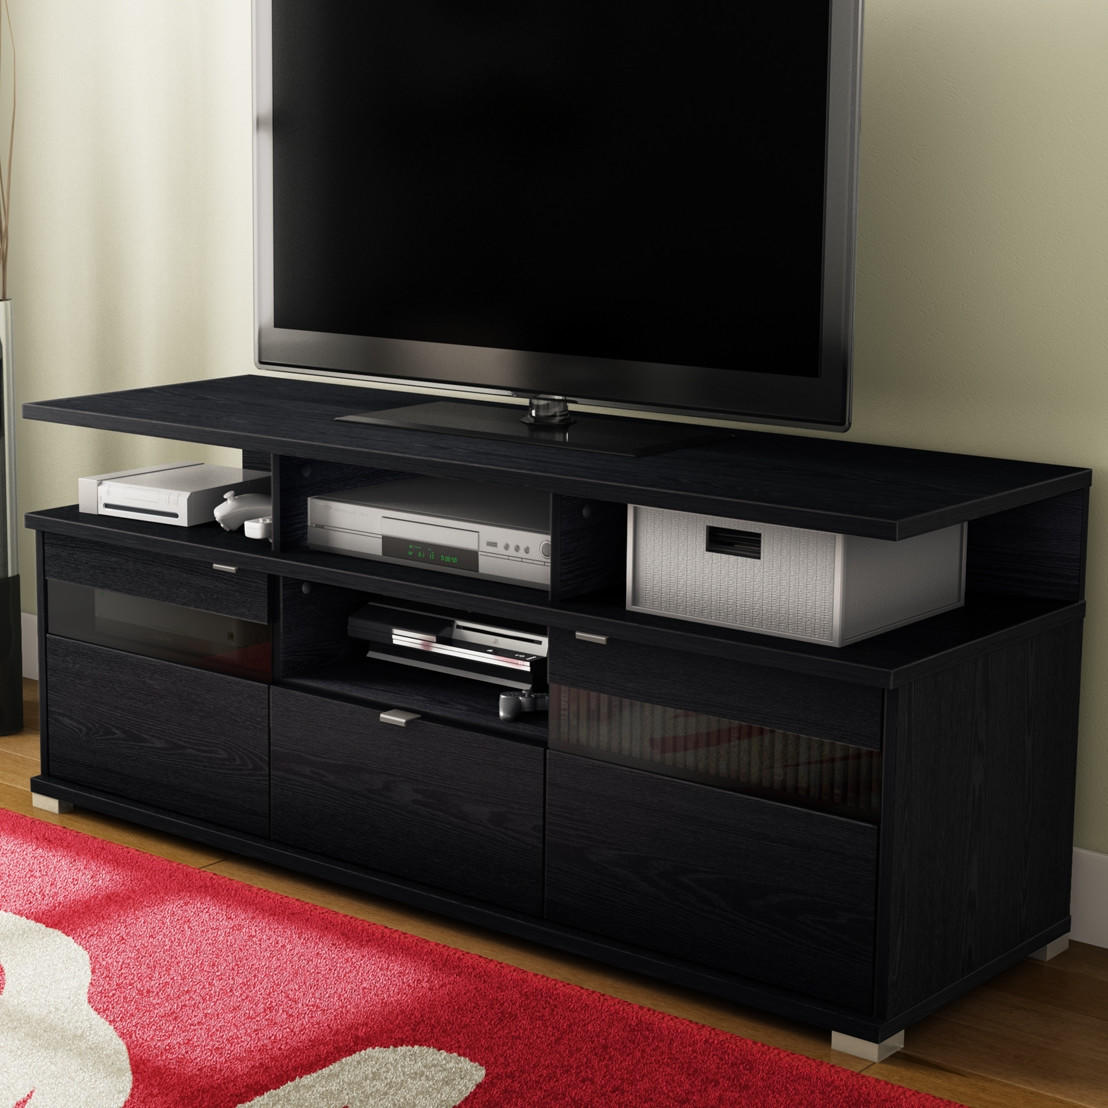 Modern Tv Stand In Black Black Oak Finish From Hearts Attic